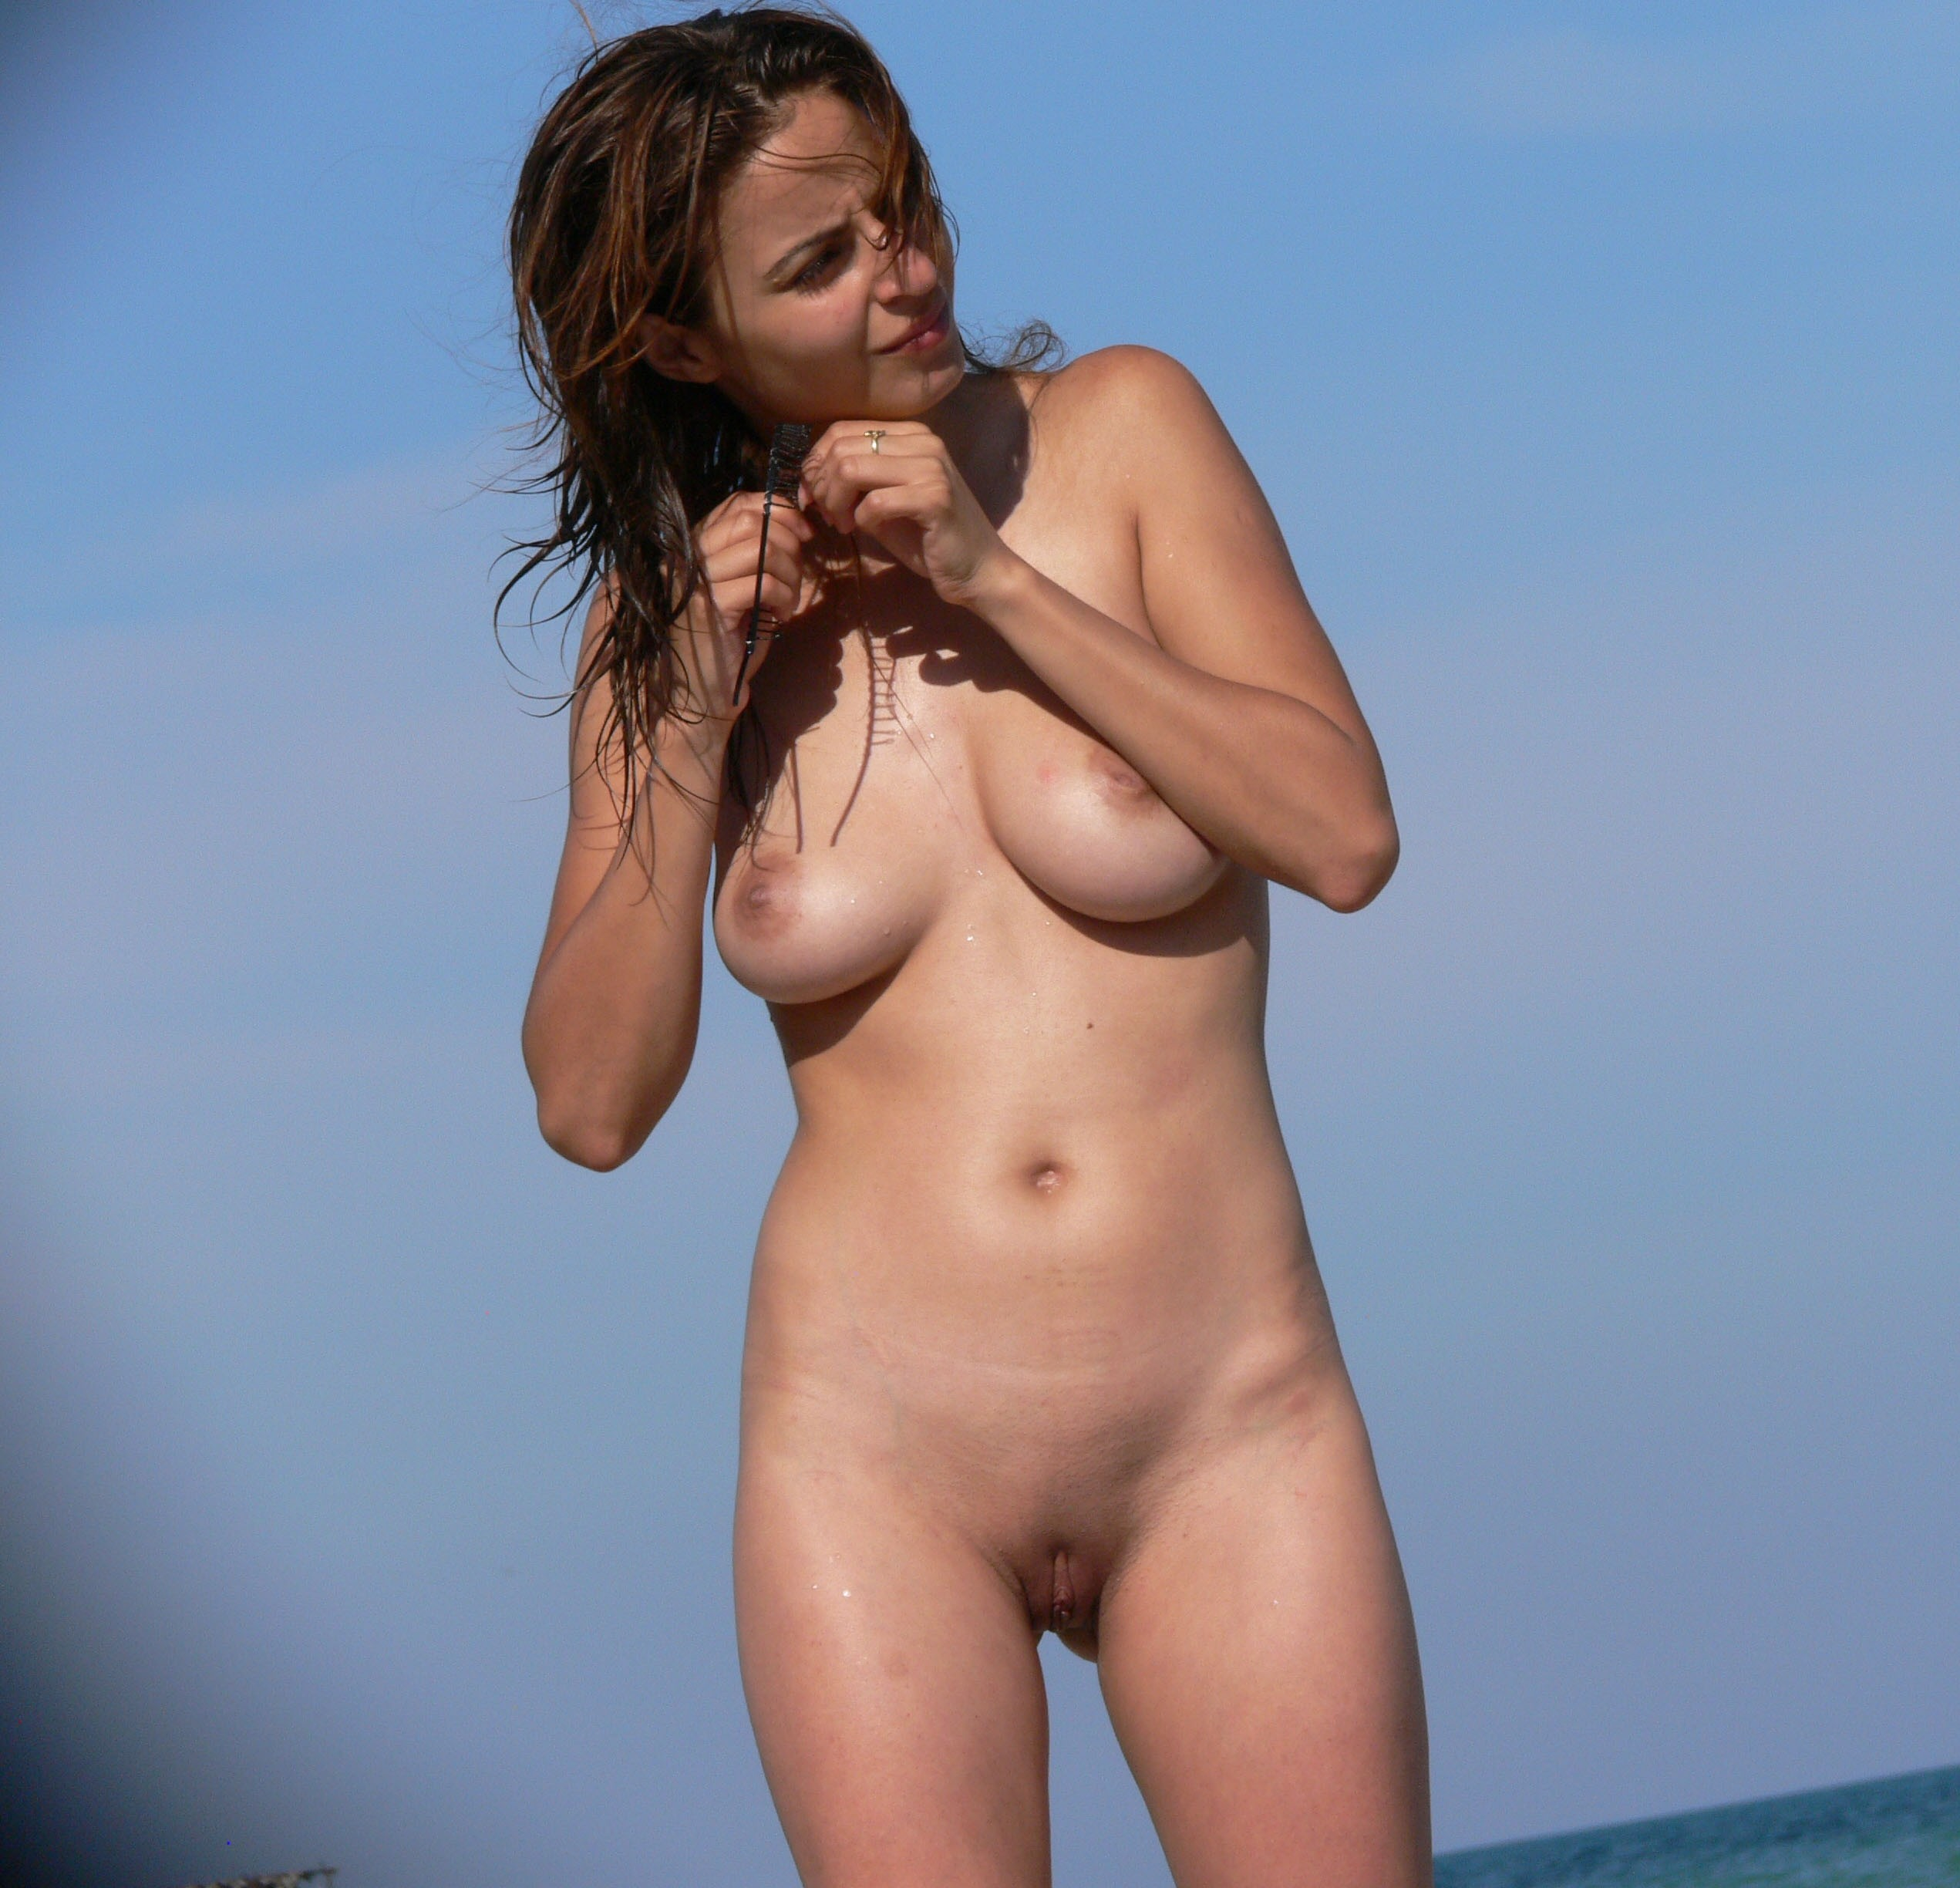 nude-beach-nudists-girls-mix-vol6-83